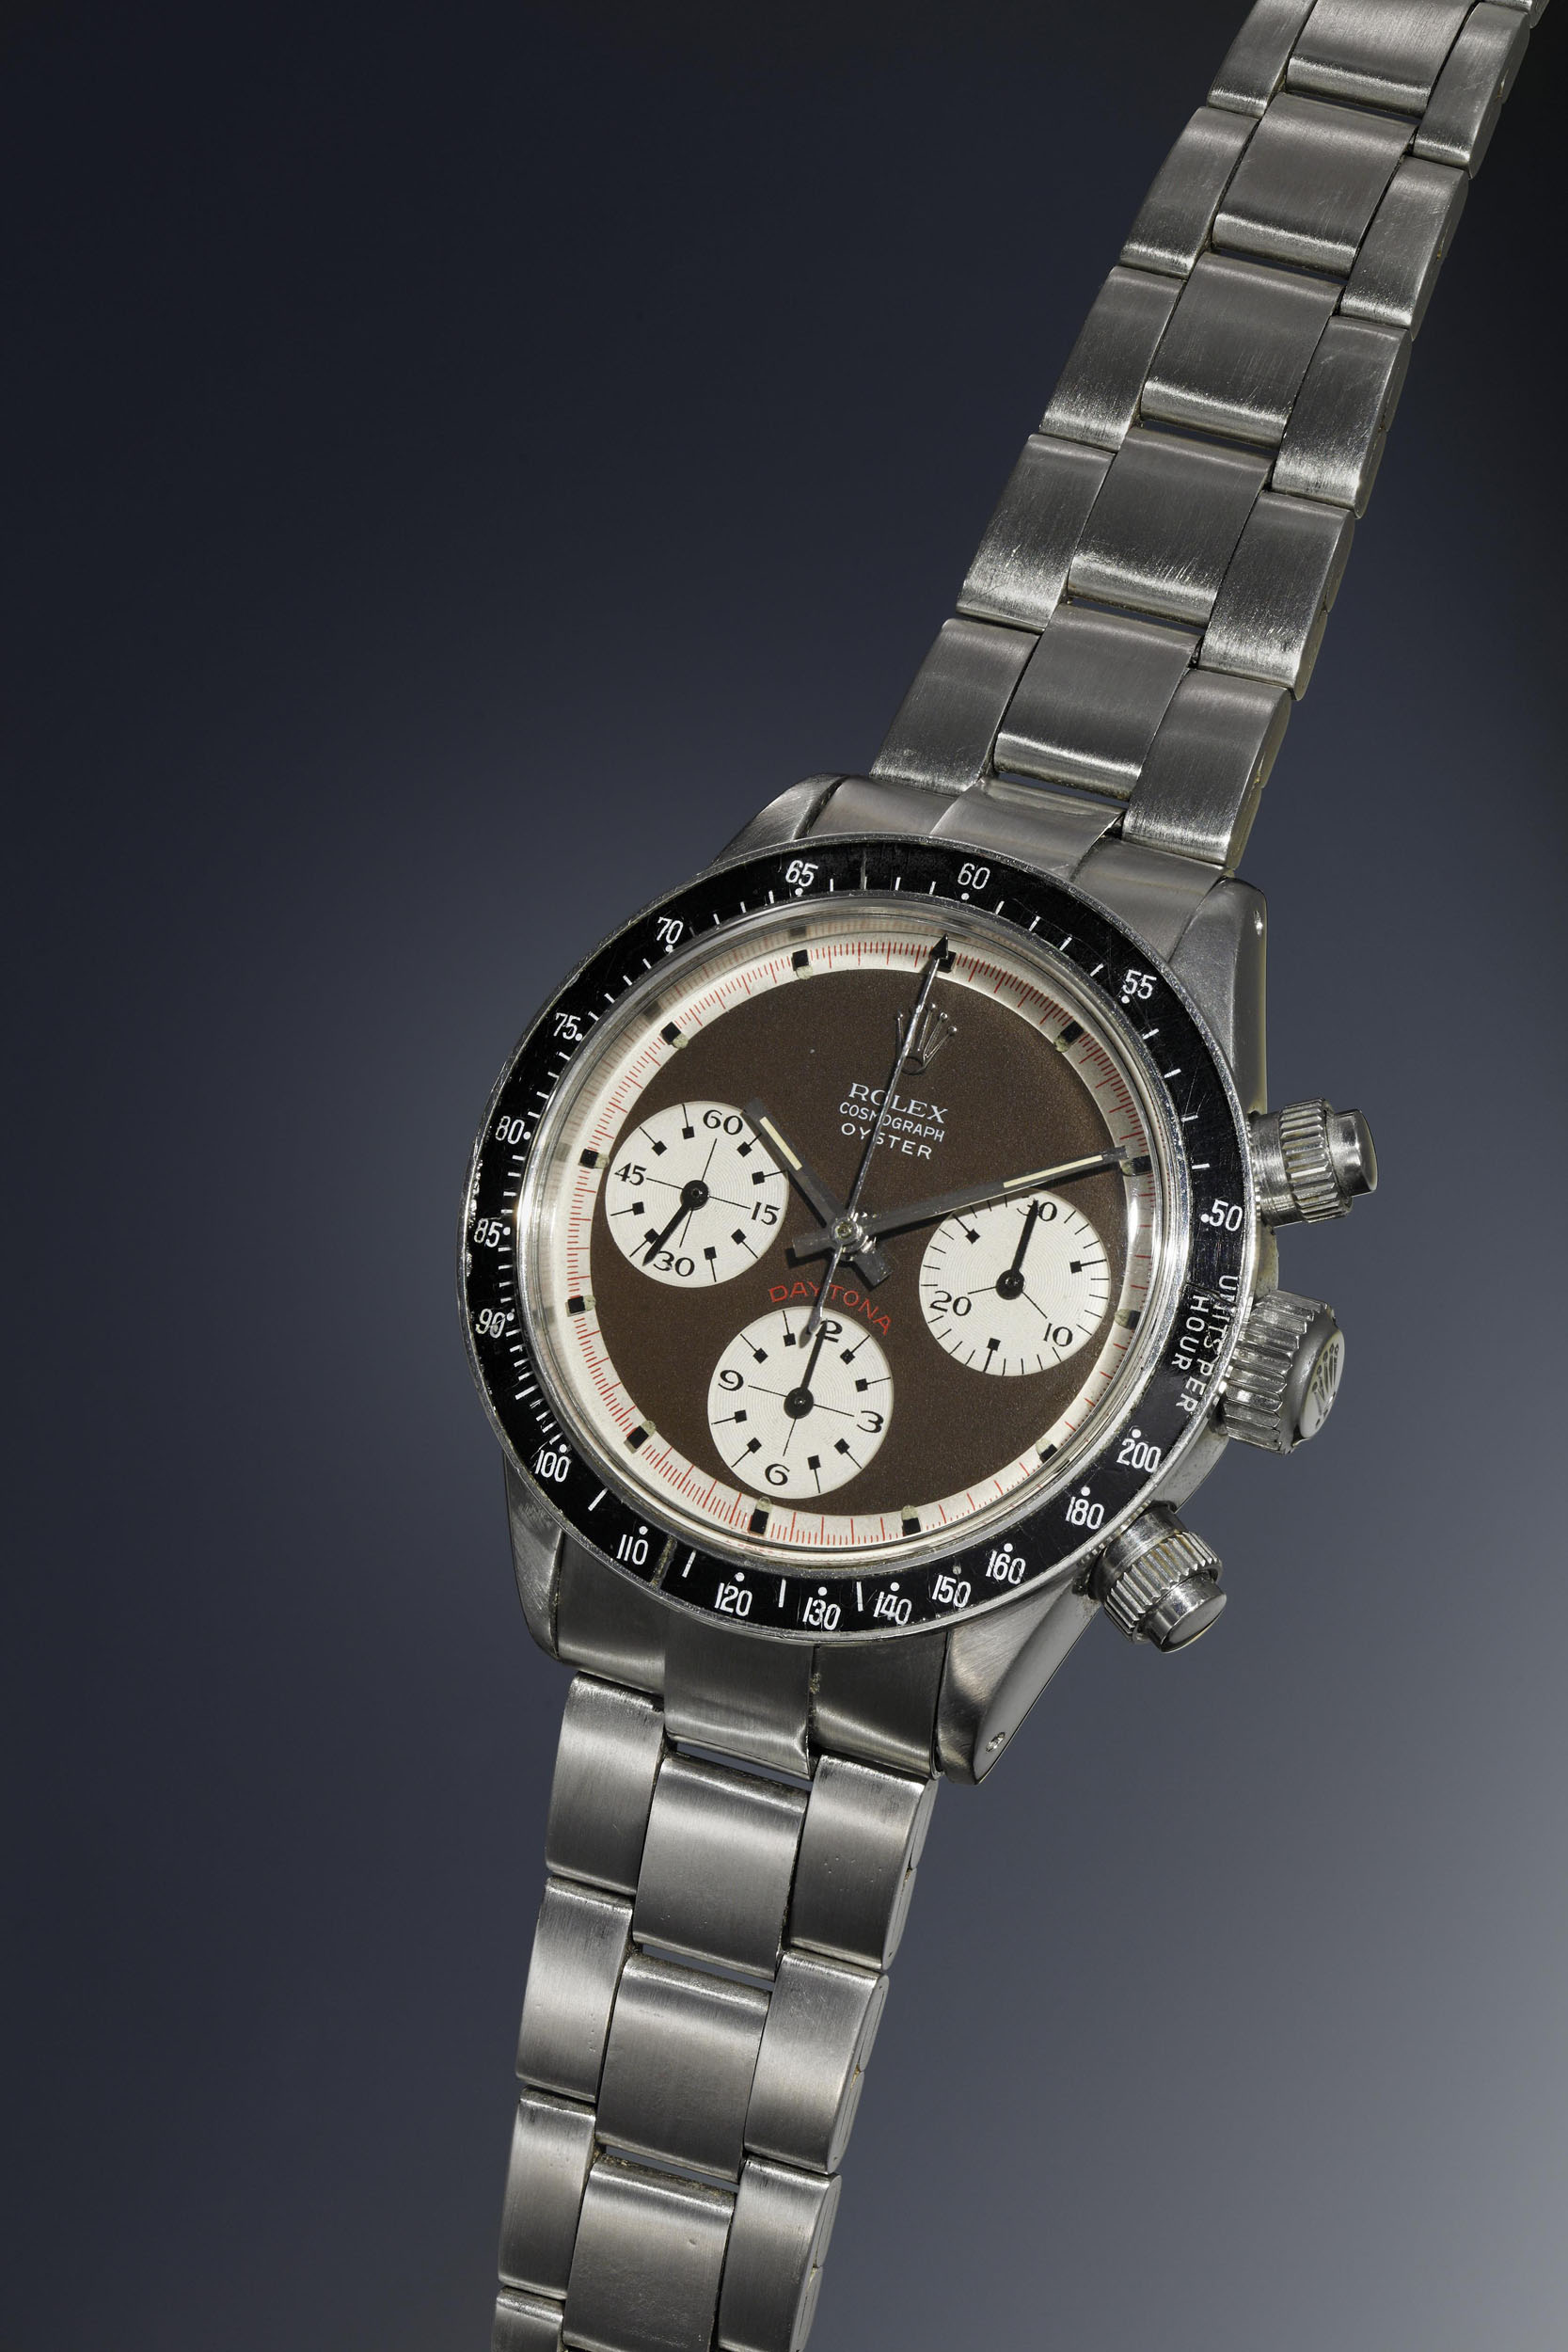 """2-Rolex Cosmograph Daytona """"Paul Newman Oyster Sotto"""", 6263, stamped inside caseback 6239, Stainless steel, 1969"""